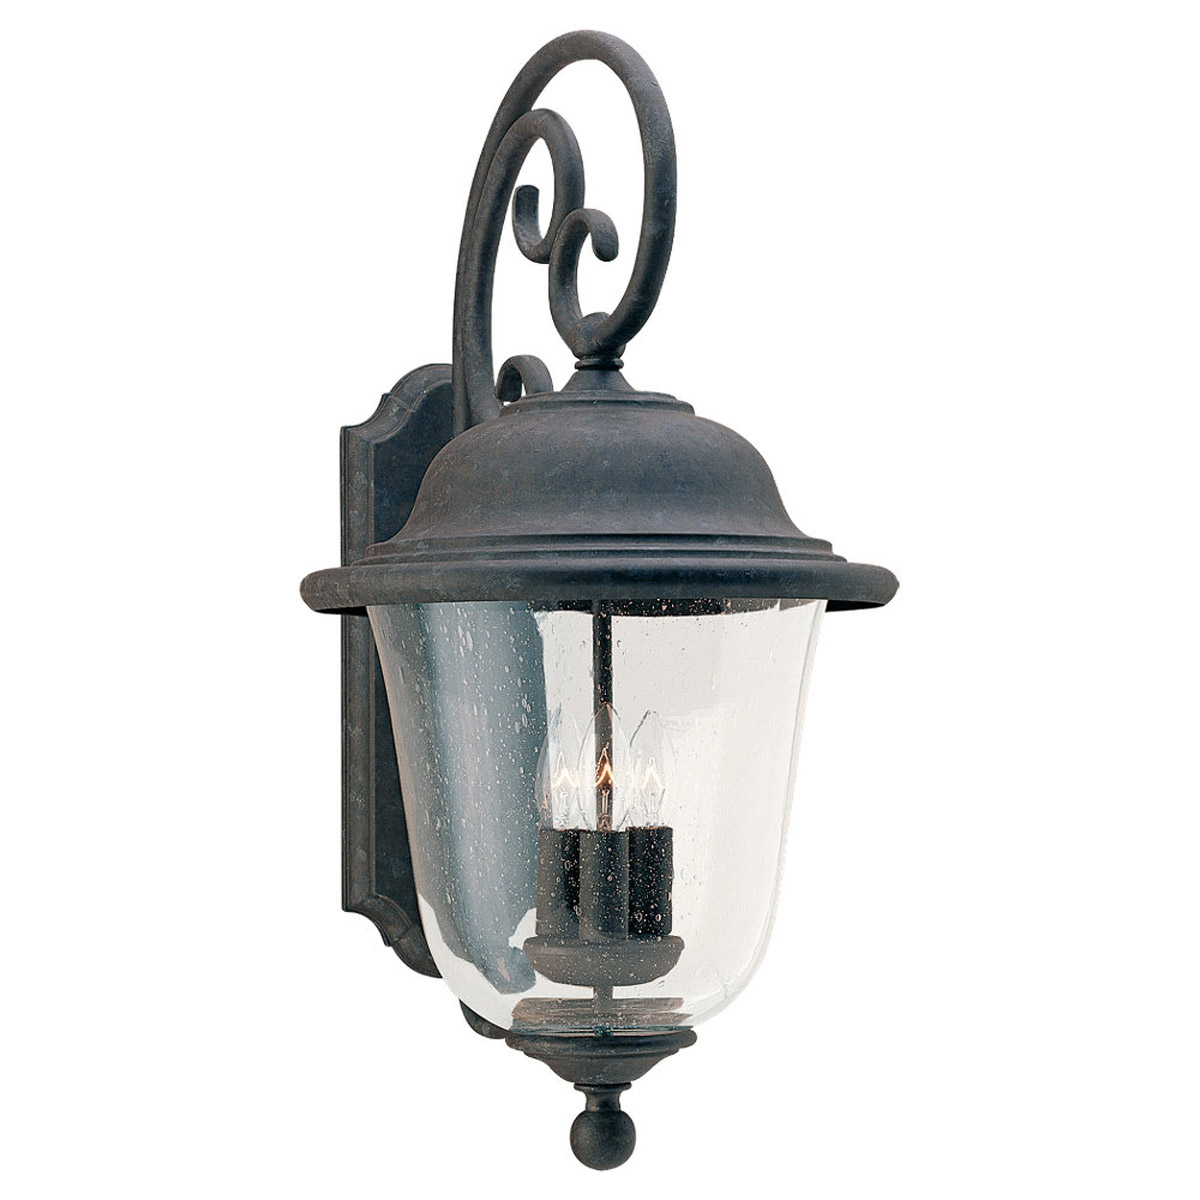 Sea Gull Lighting Trafalgar 3 Light Outdoor Wall Lantern in Oxidized Bronze 8461-46